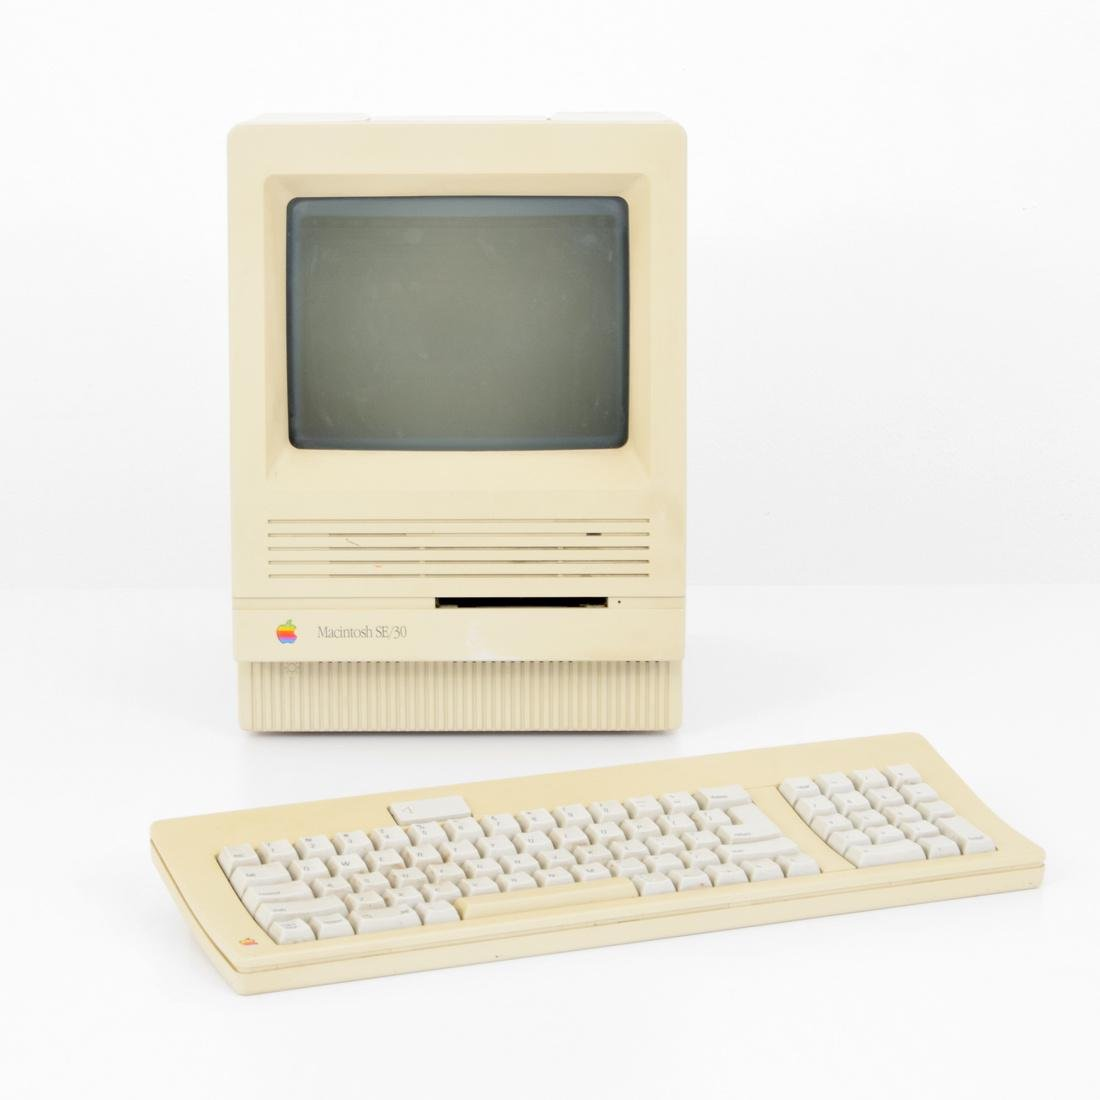 Apple Macintosh SE/30 Computer & Keyboard - 2